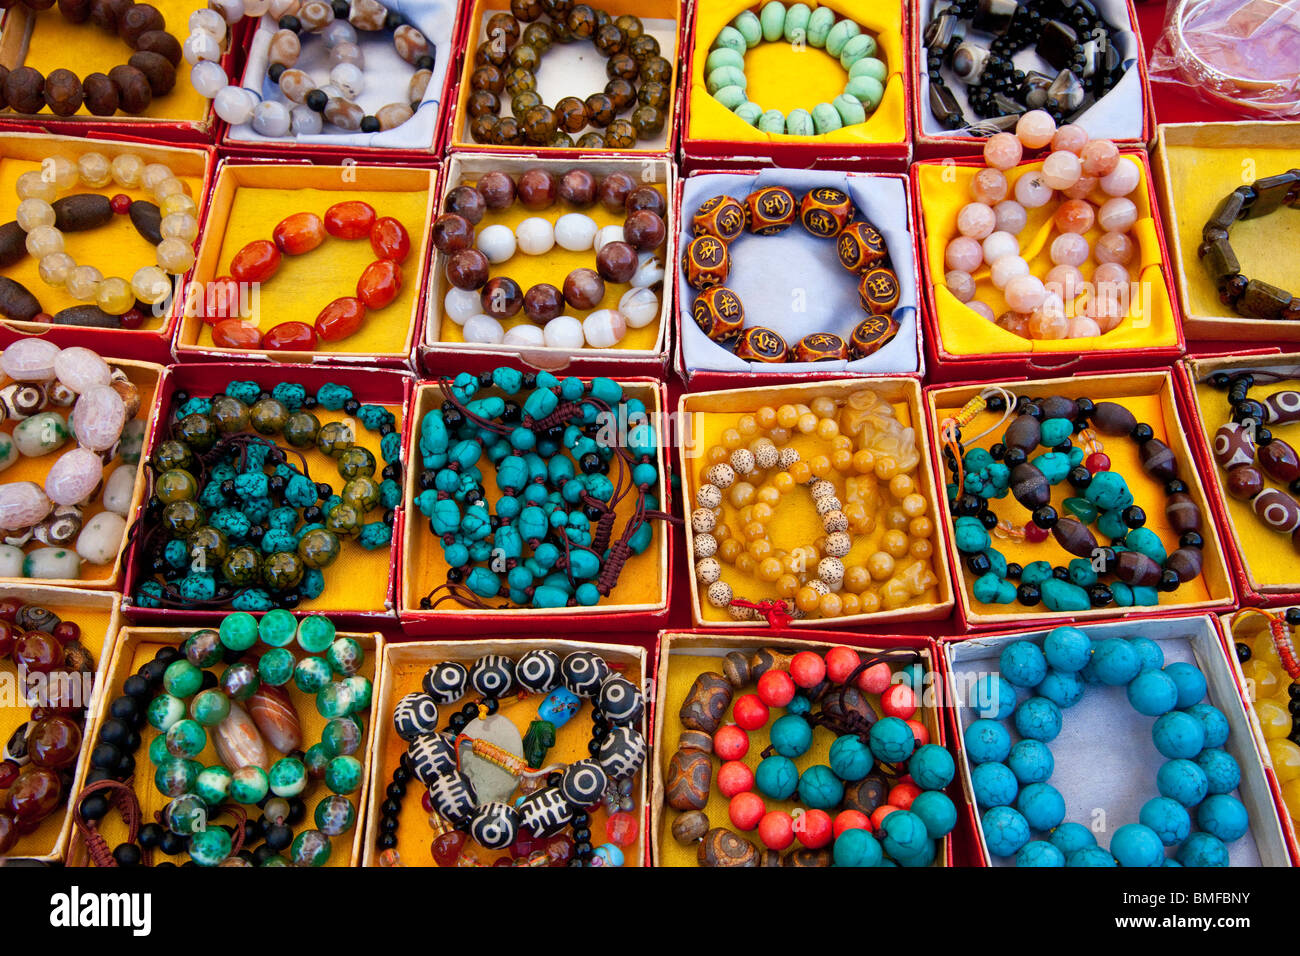 Souvenir jewelry in Shangri-La or Zhongdian in Yunnan Province, China - Stock Image